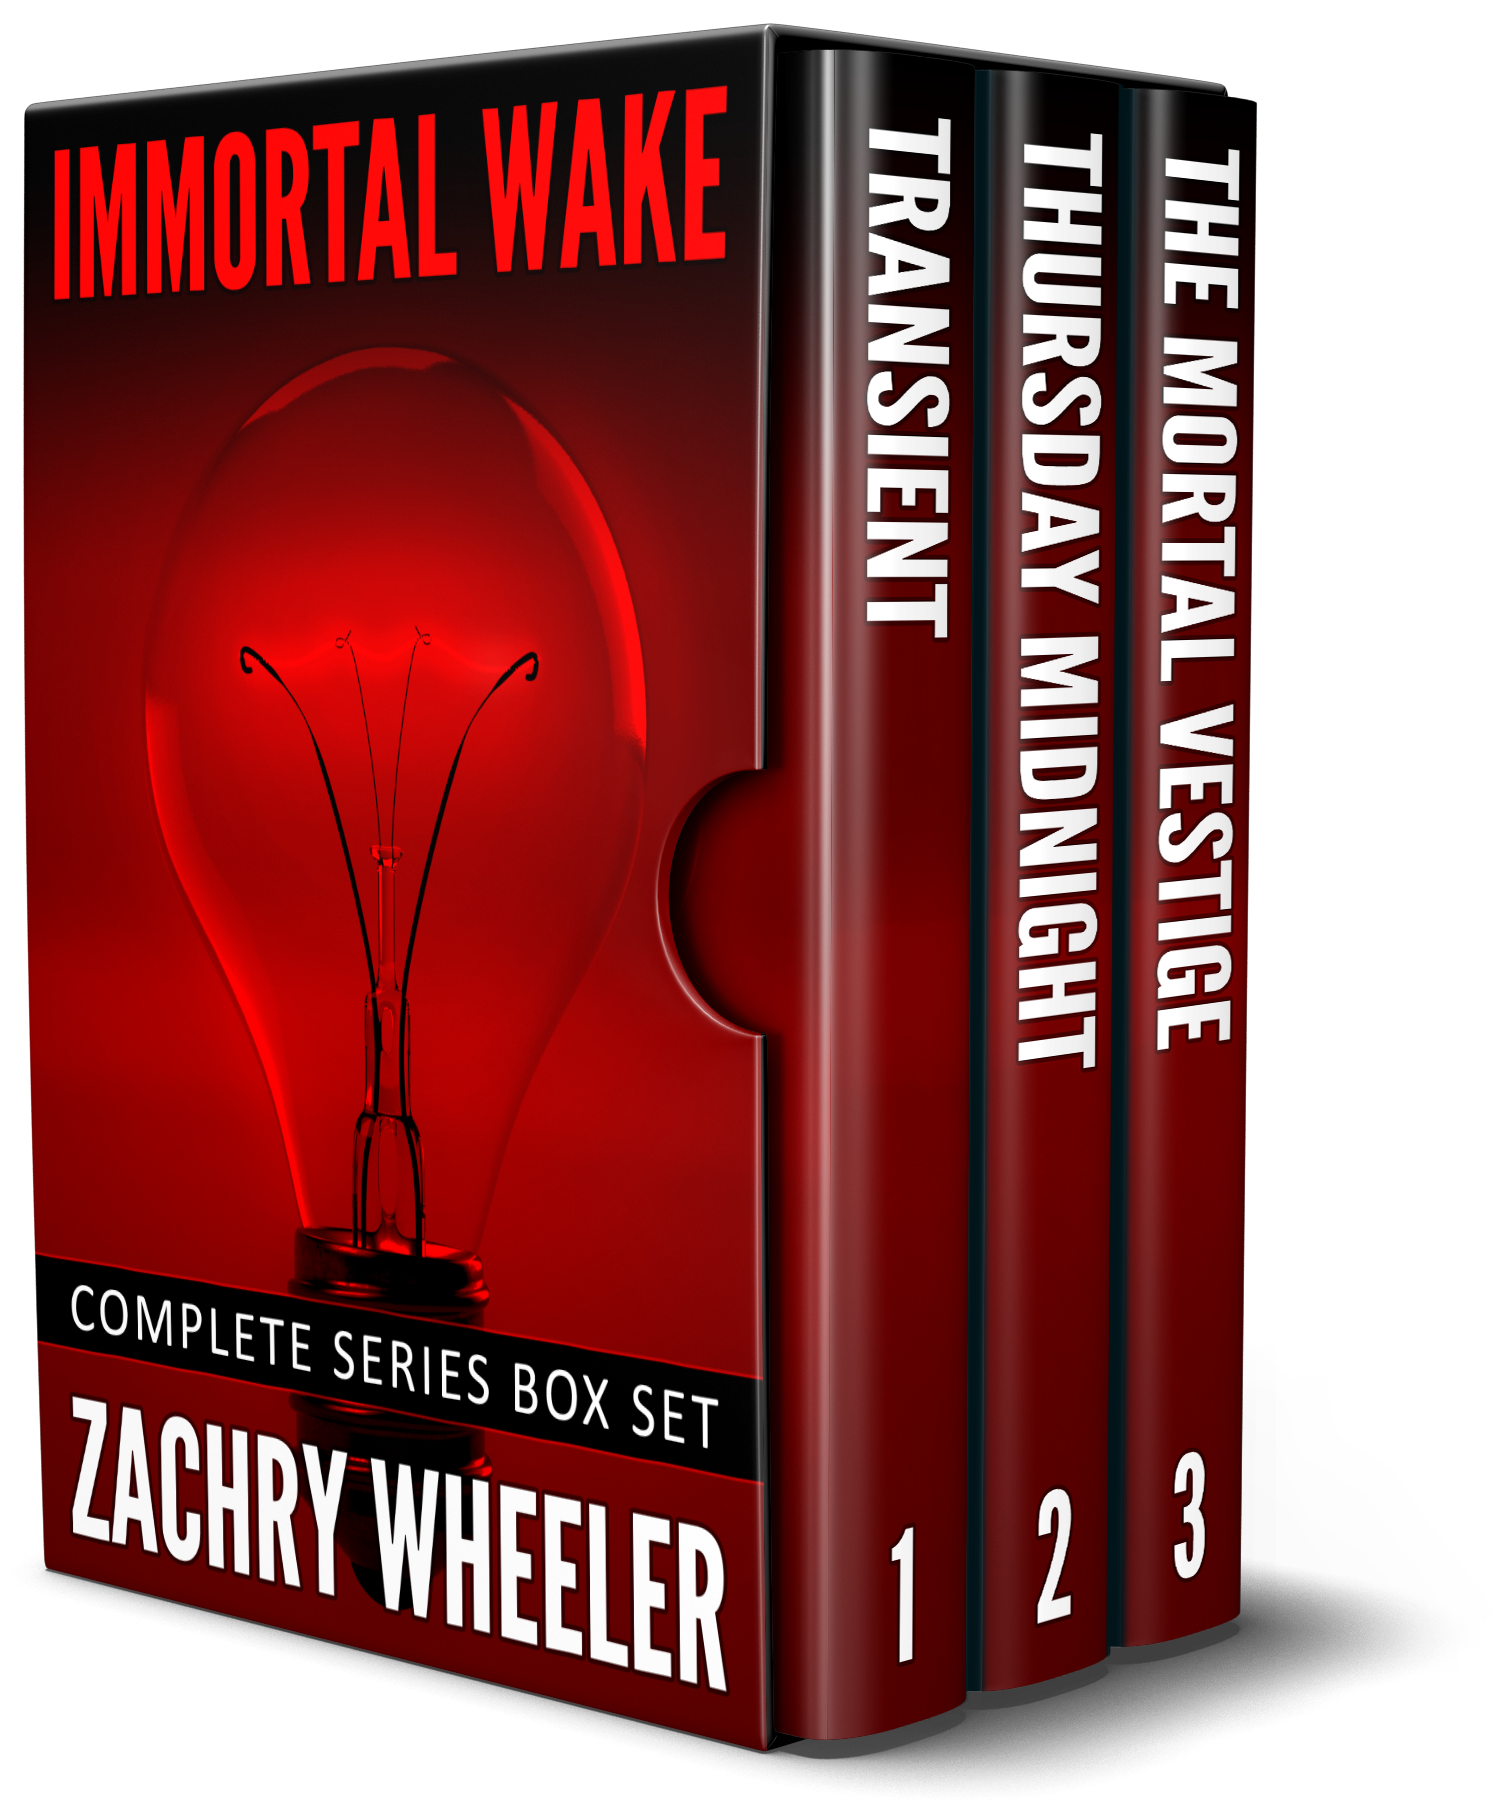 Immortal Wake Box Set by Zachry Wheeler